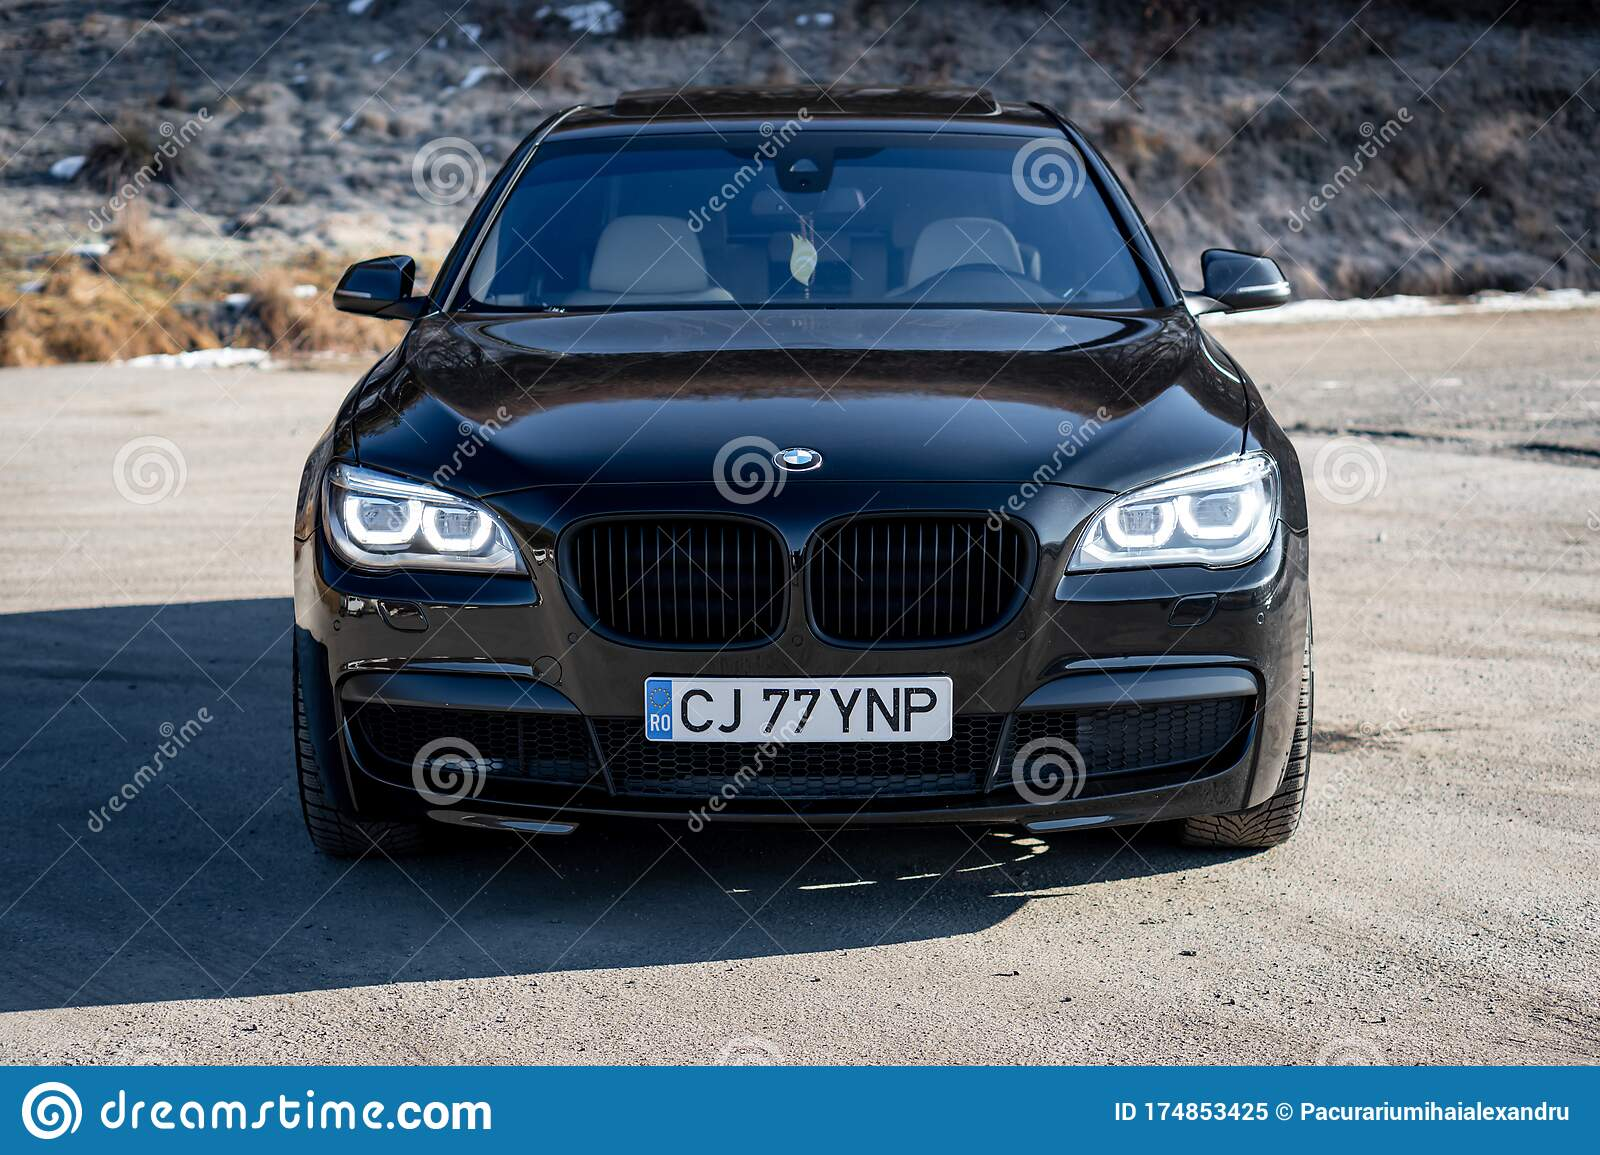 Bmw 7 Series Matte Black M Trim Sport Edition Editorial Image Image Of Automatic Editorial 174853425